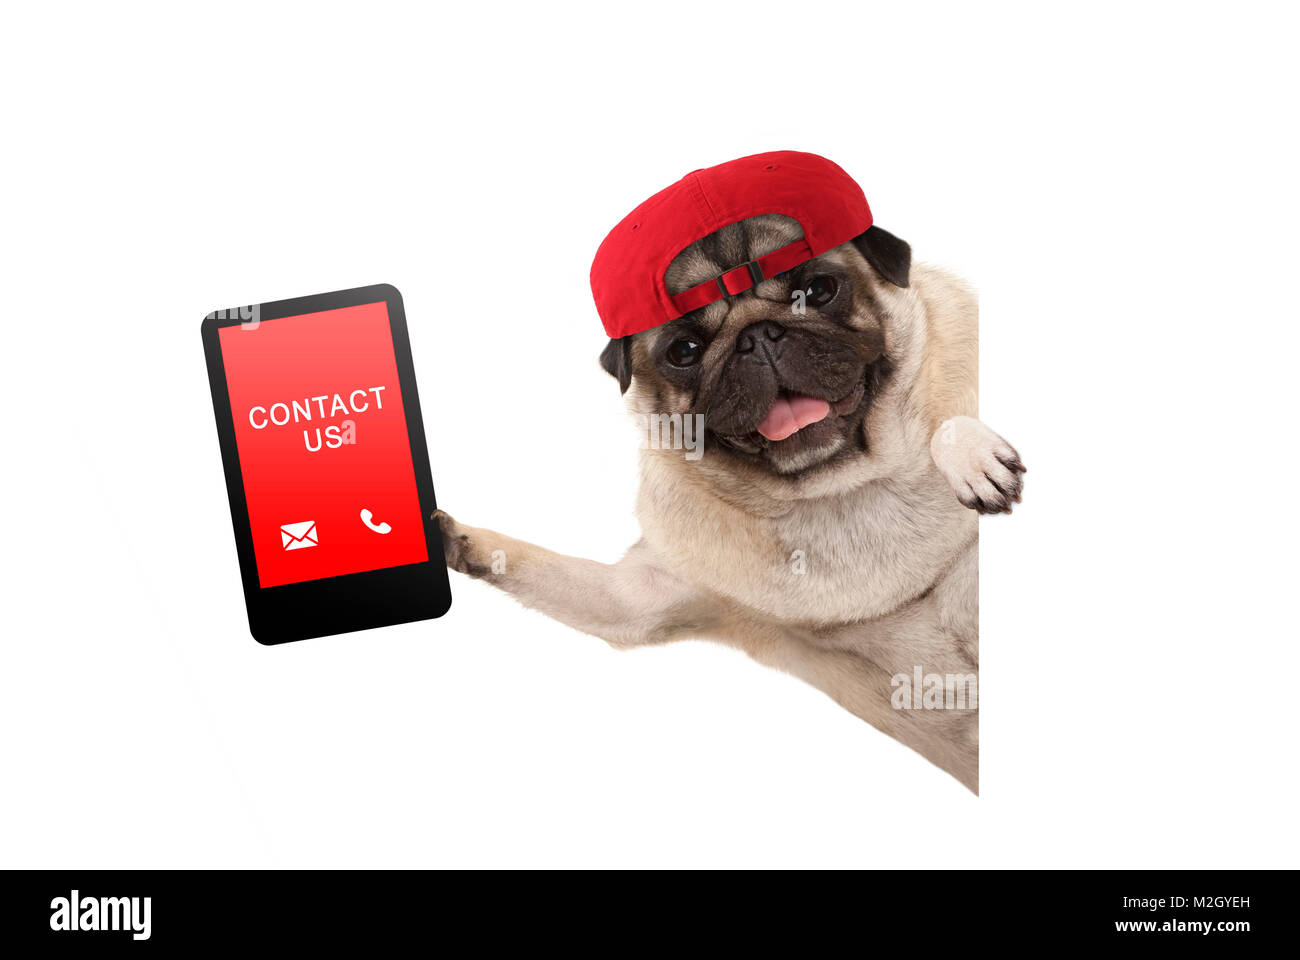 frolic pug puppy dog with red cap, holding up tablet phone with text contact us, hanging sideways from white banne, - Stock Image